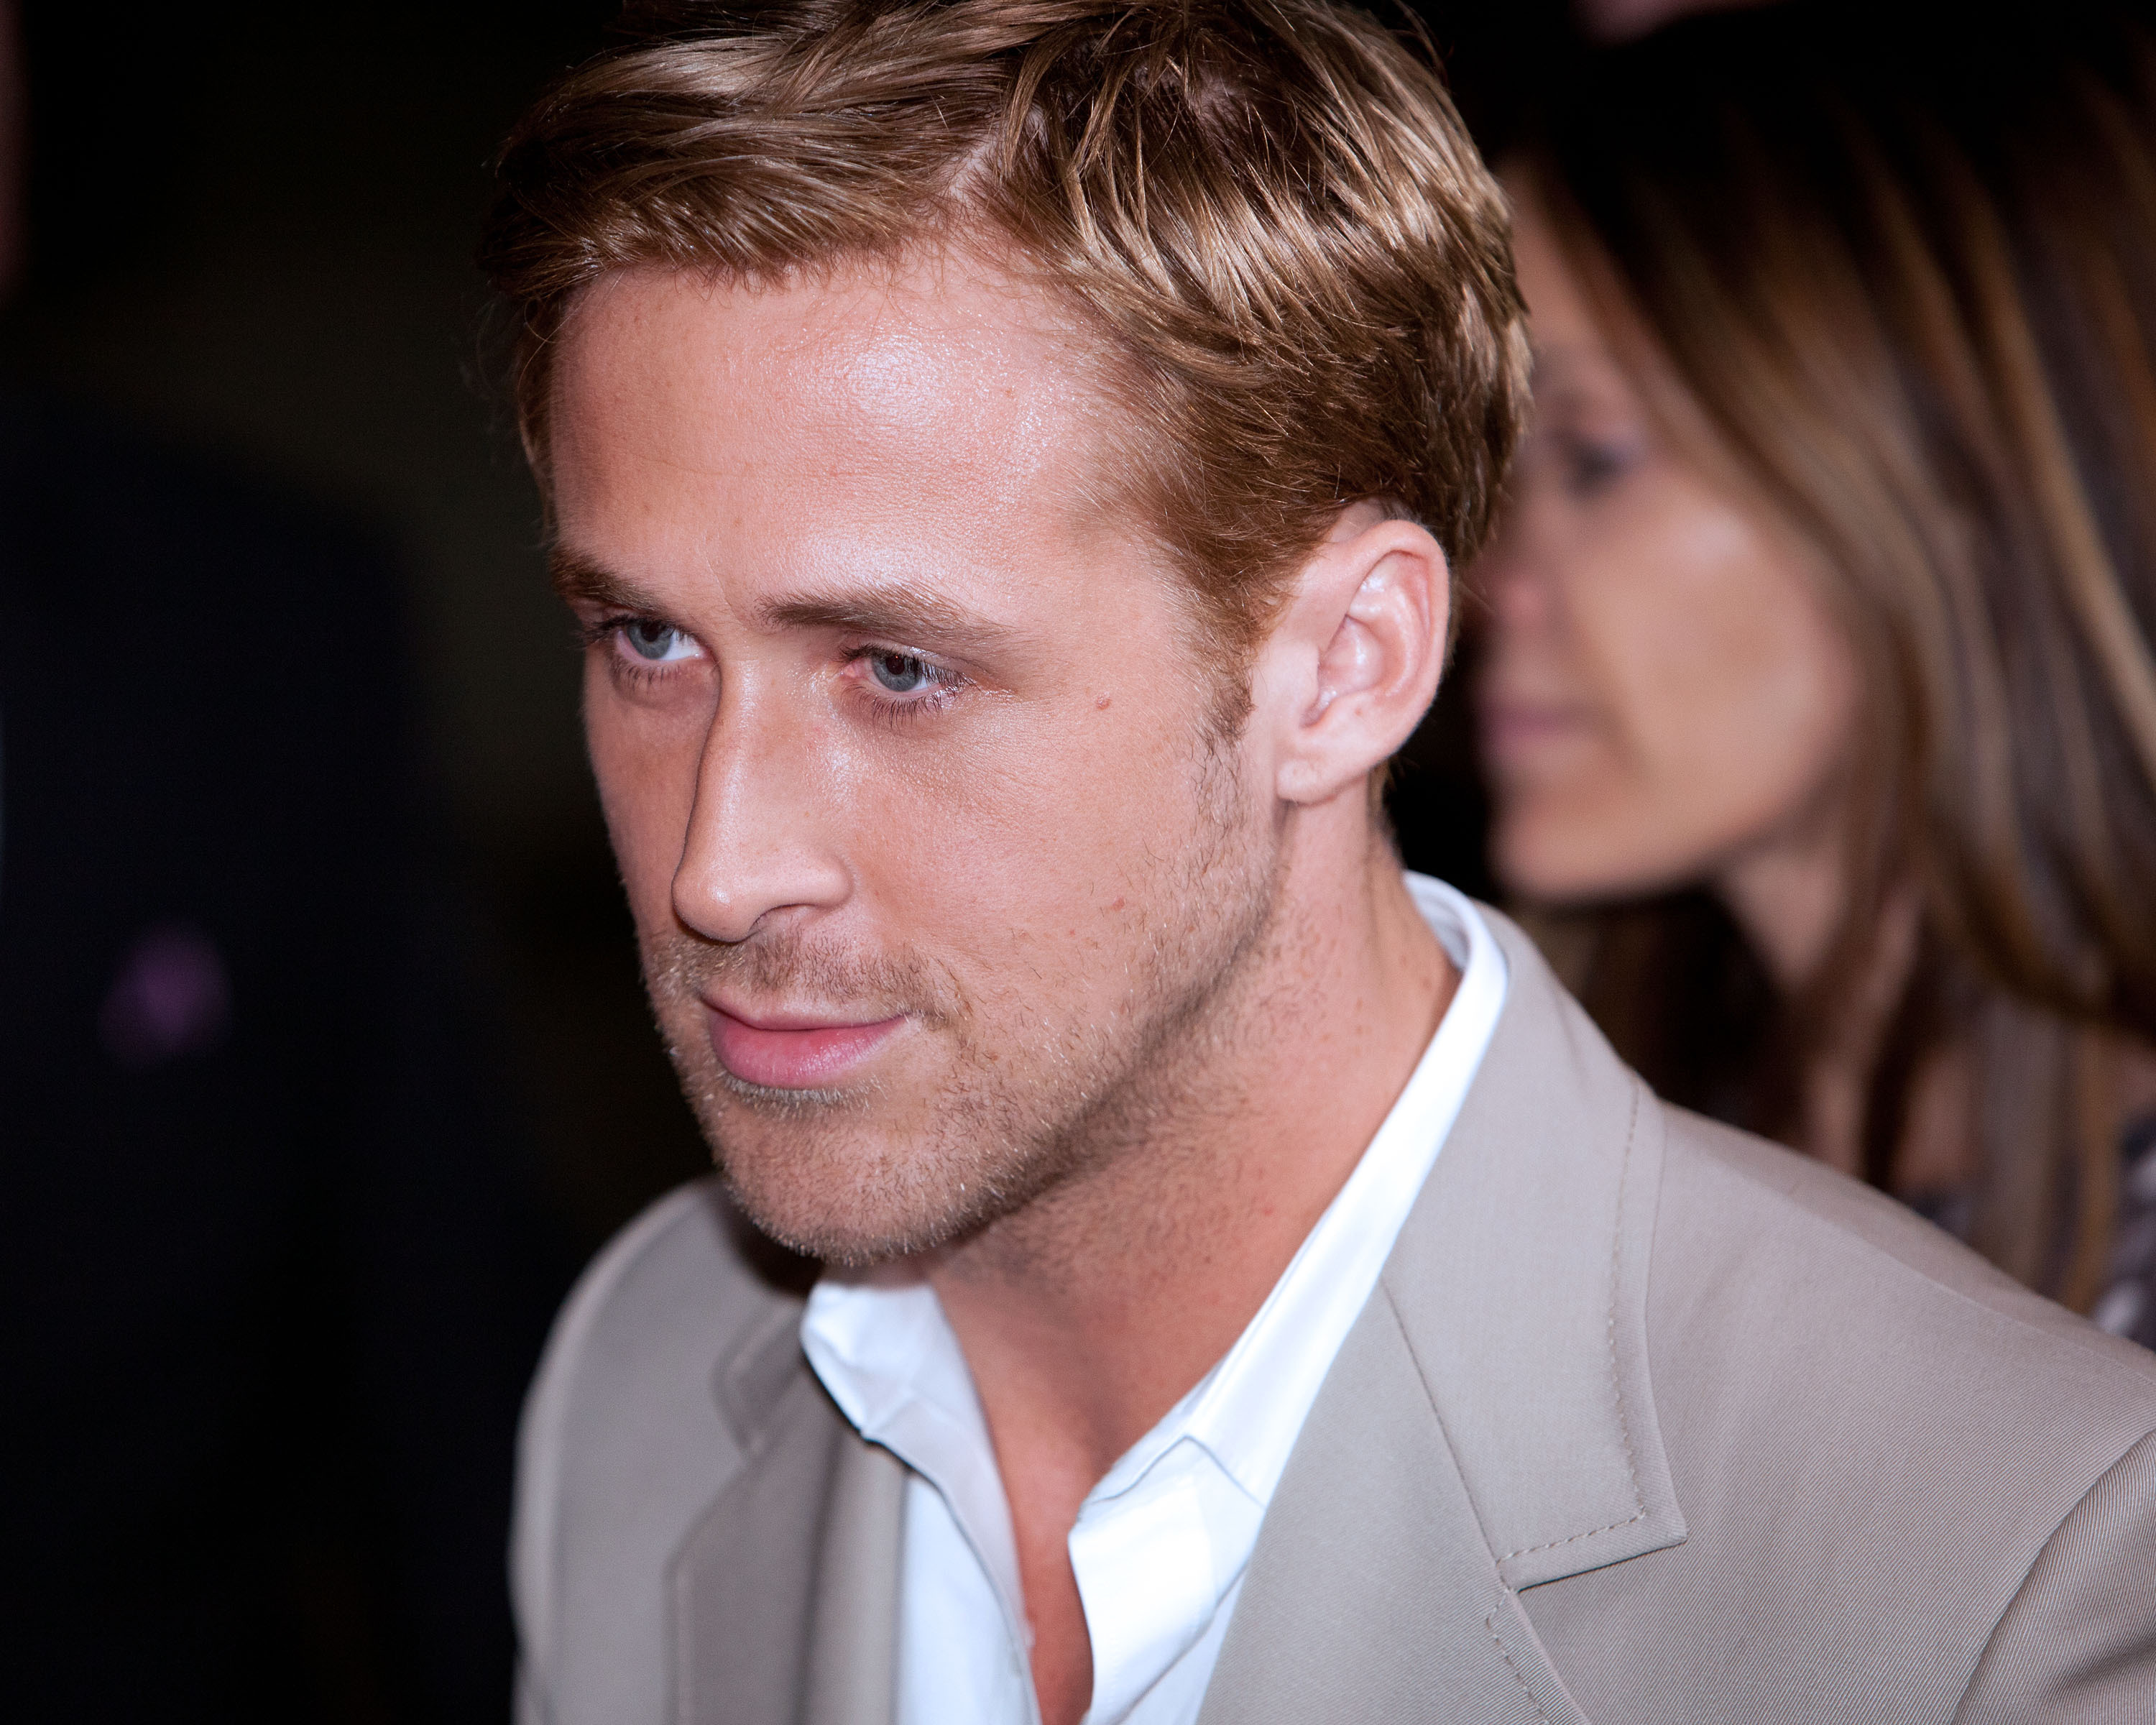 Ryan Gosling photo #367003